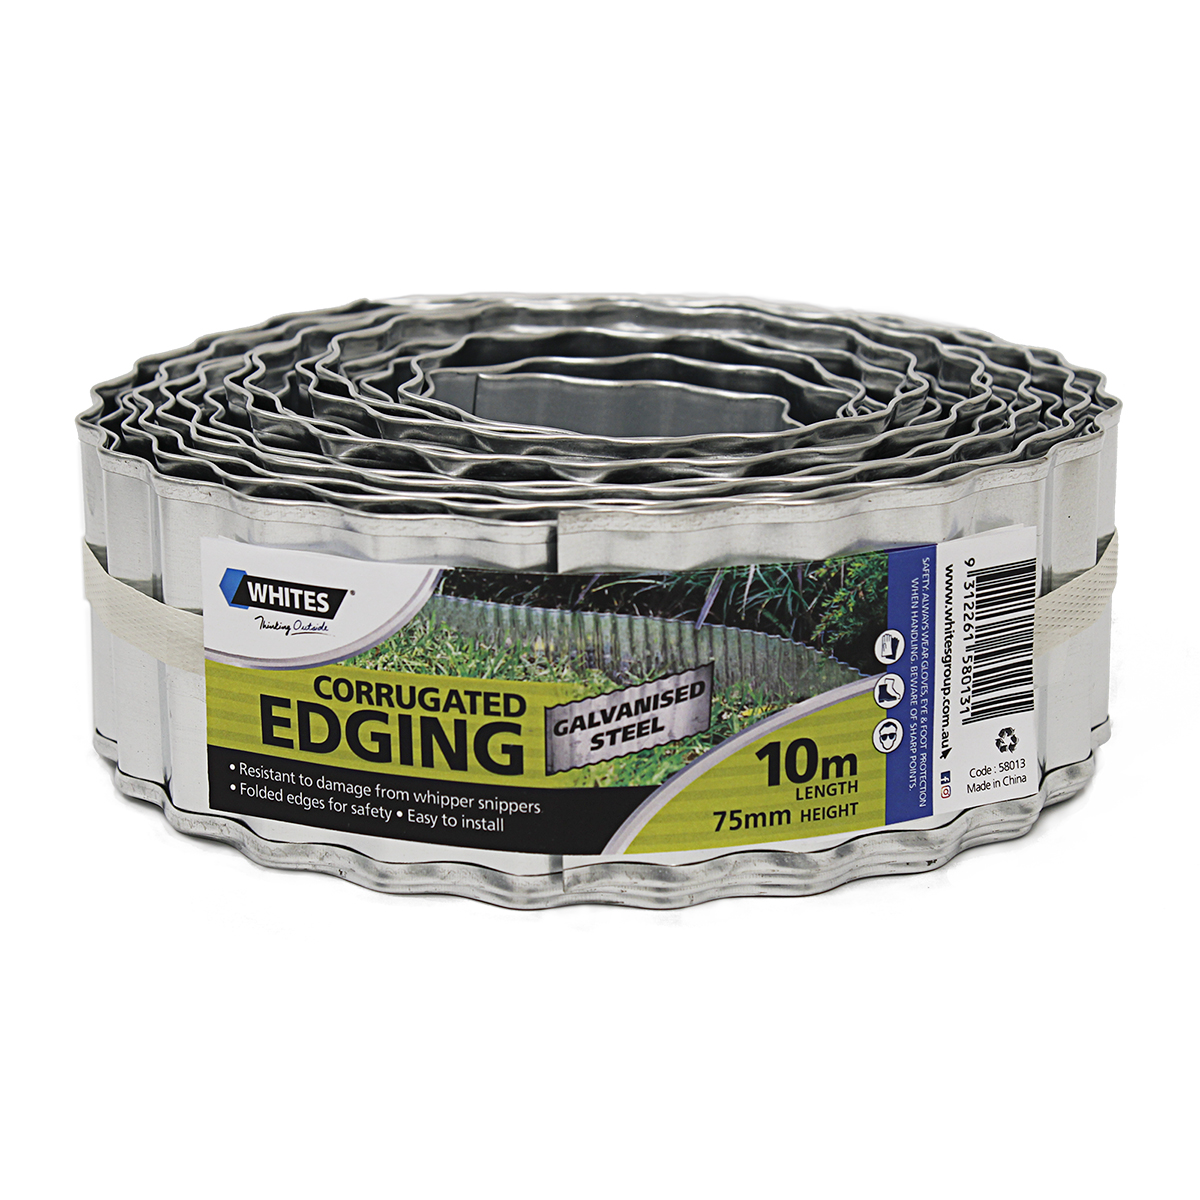 58013 - Corrugated Edging